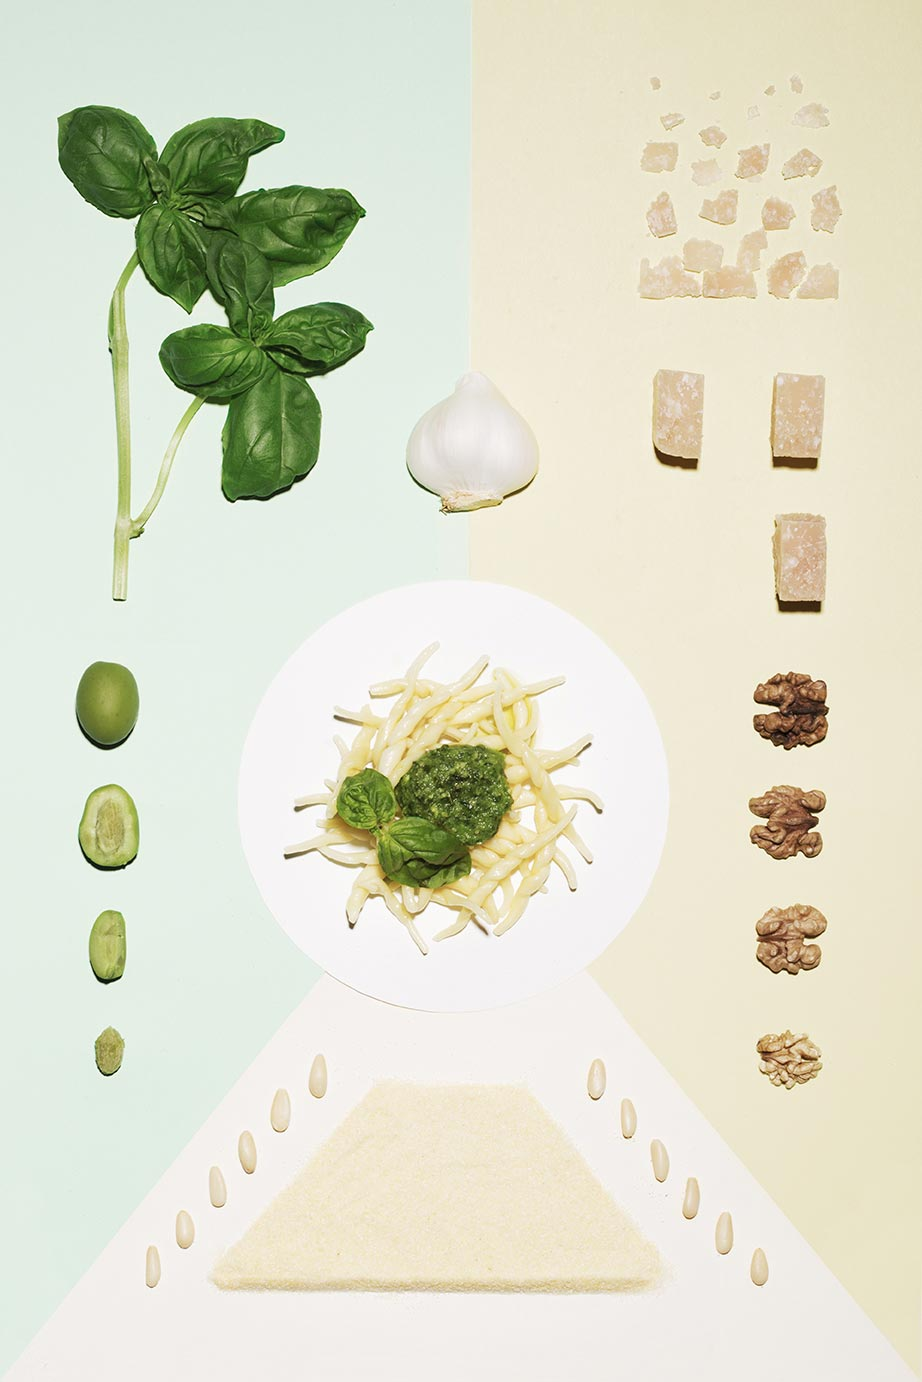 isabella-vacchi-color-coded-food-photography-5